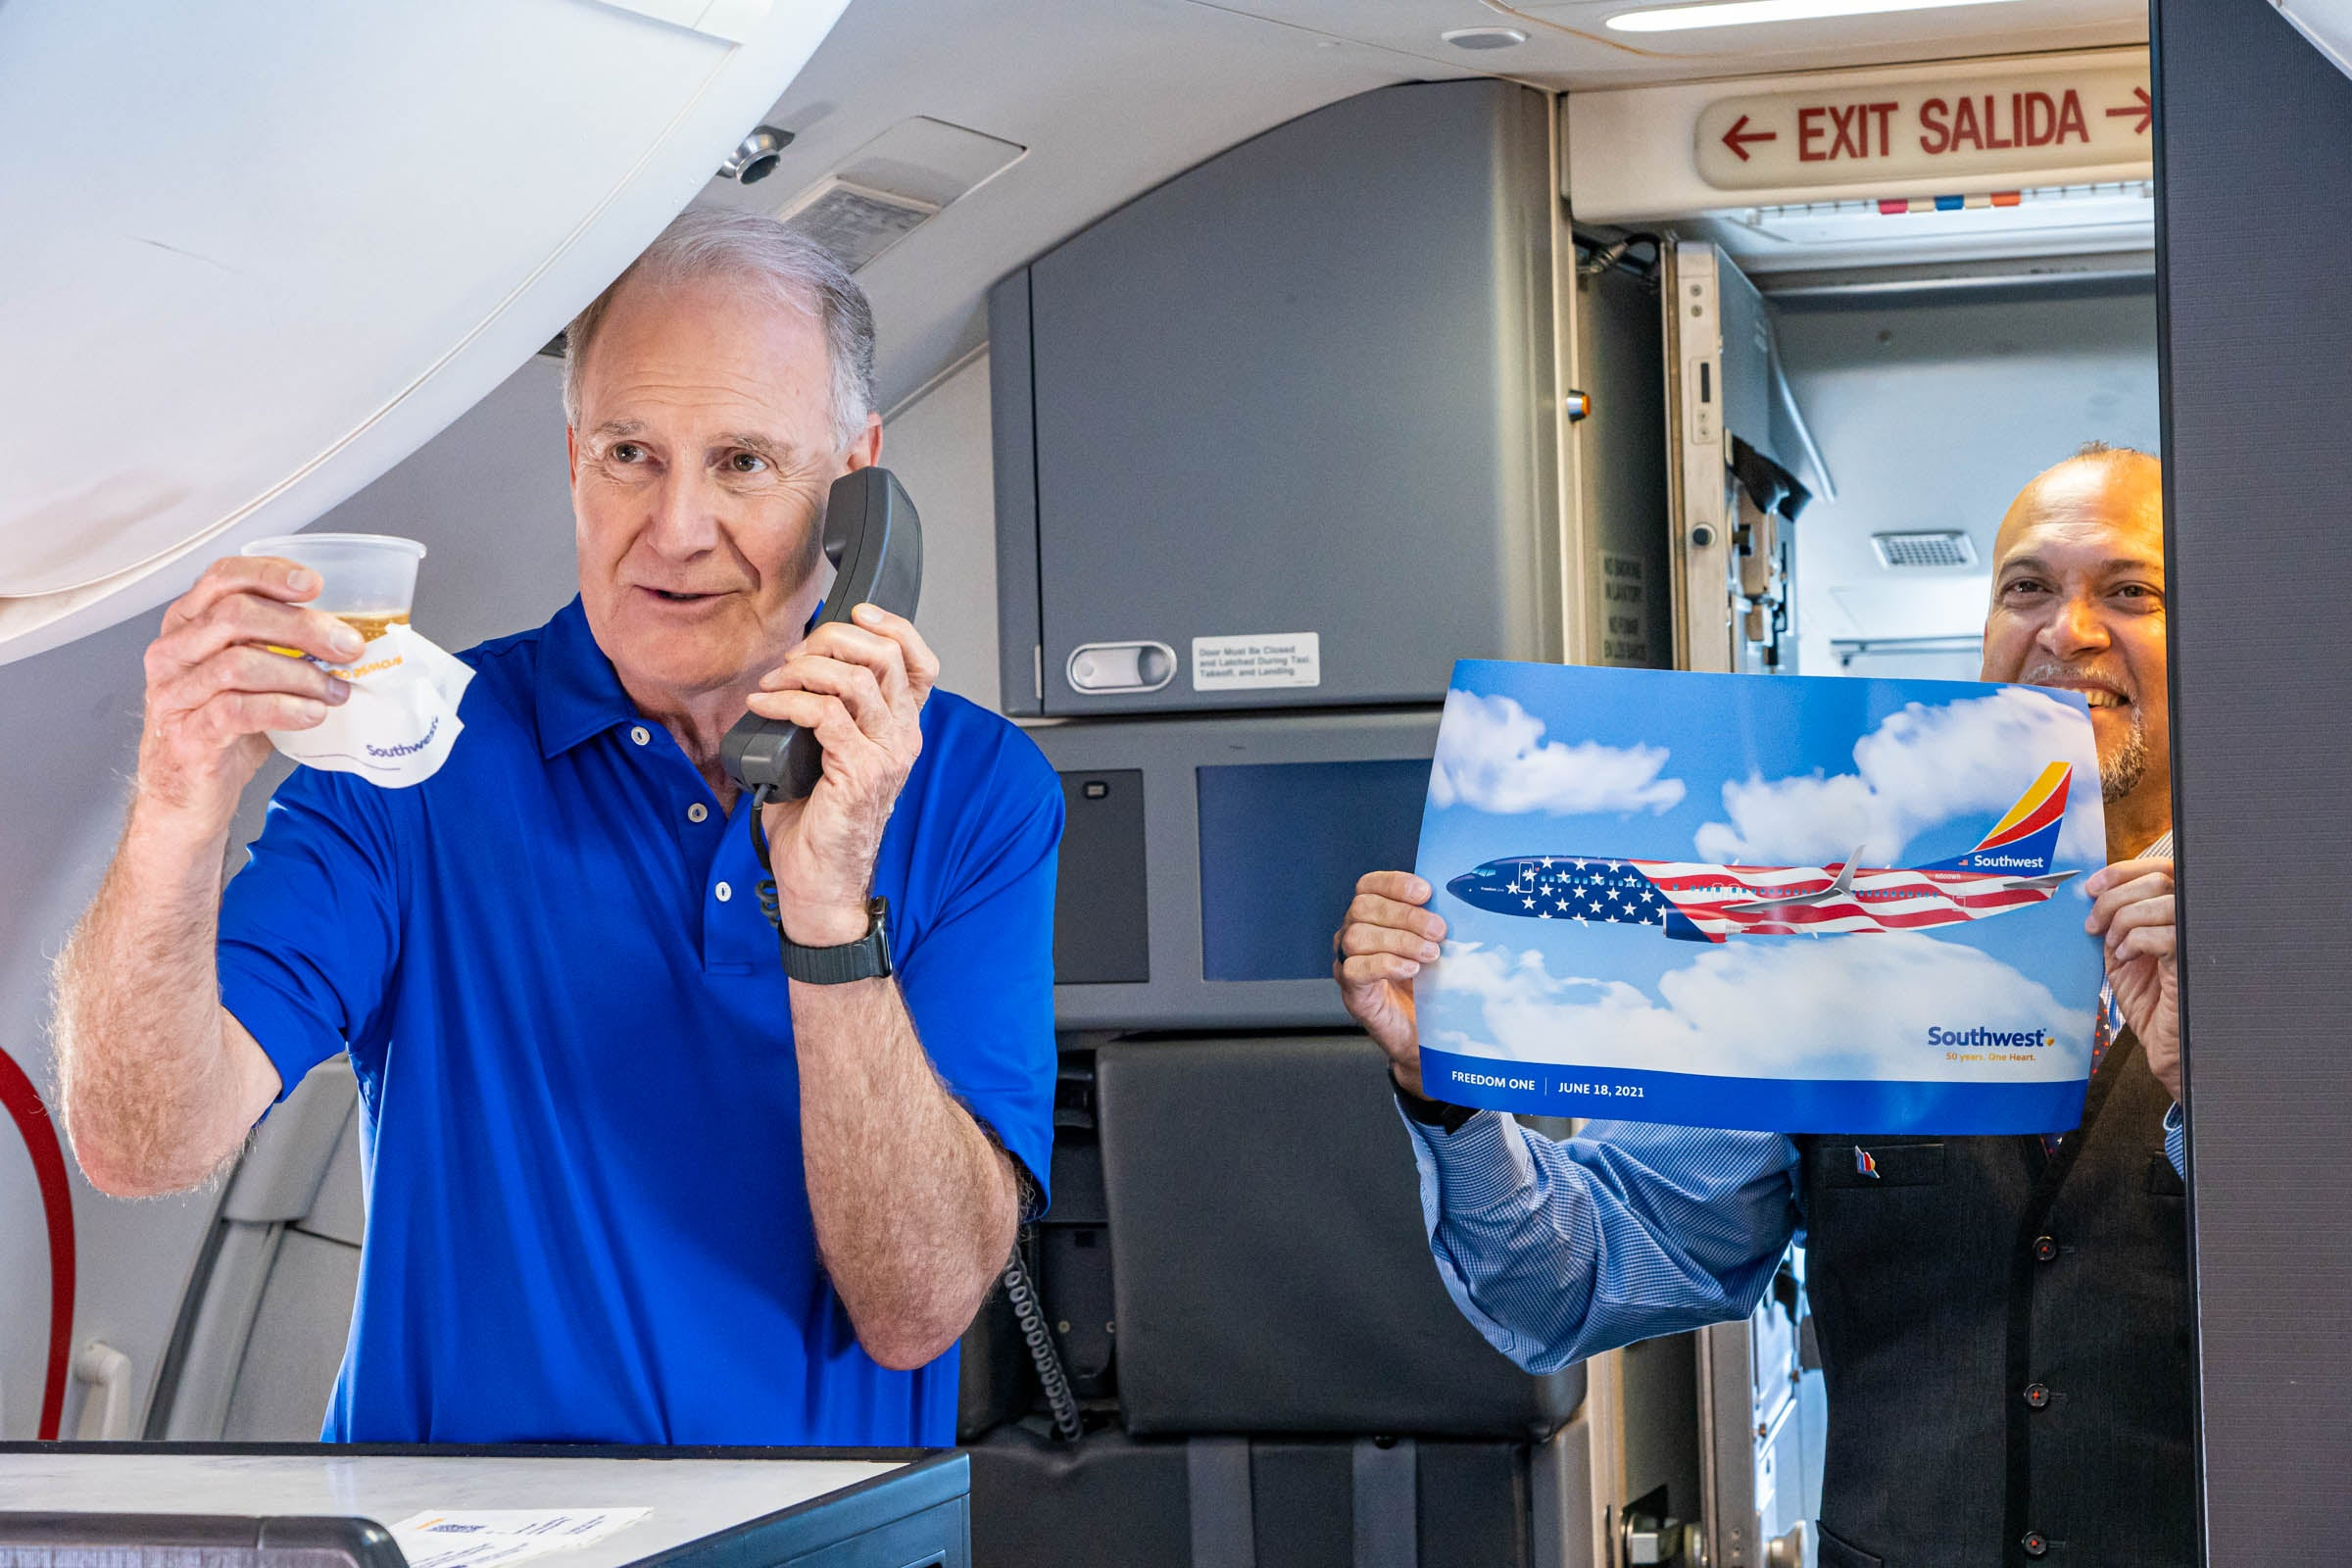 Southwest CEO Gary Kelly holds a plastic cup and speaks on aircraft public address system.